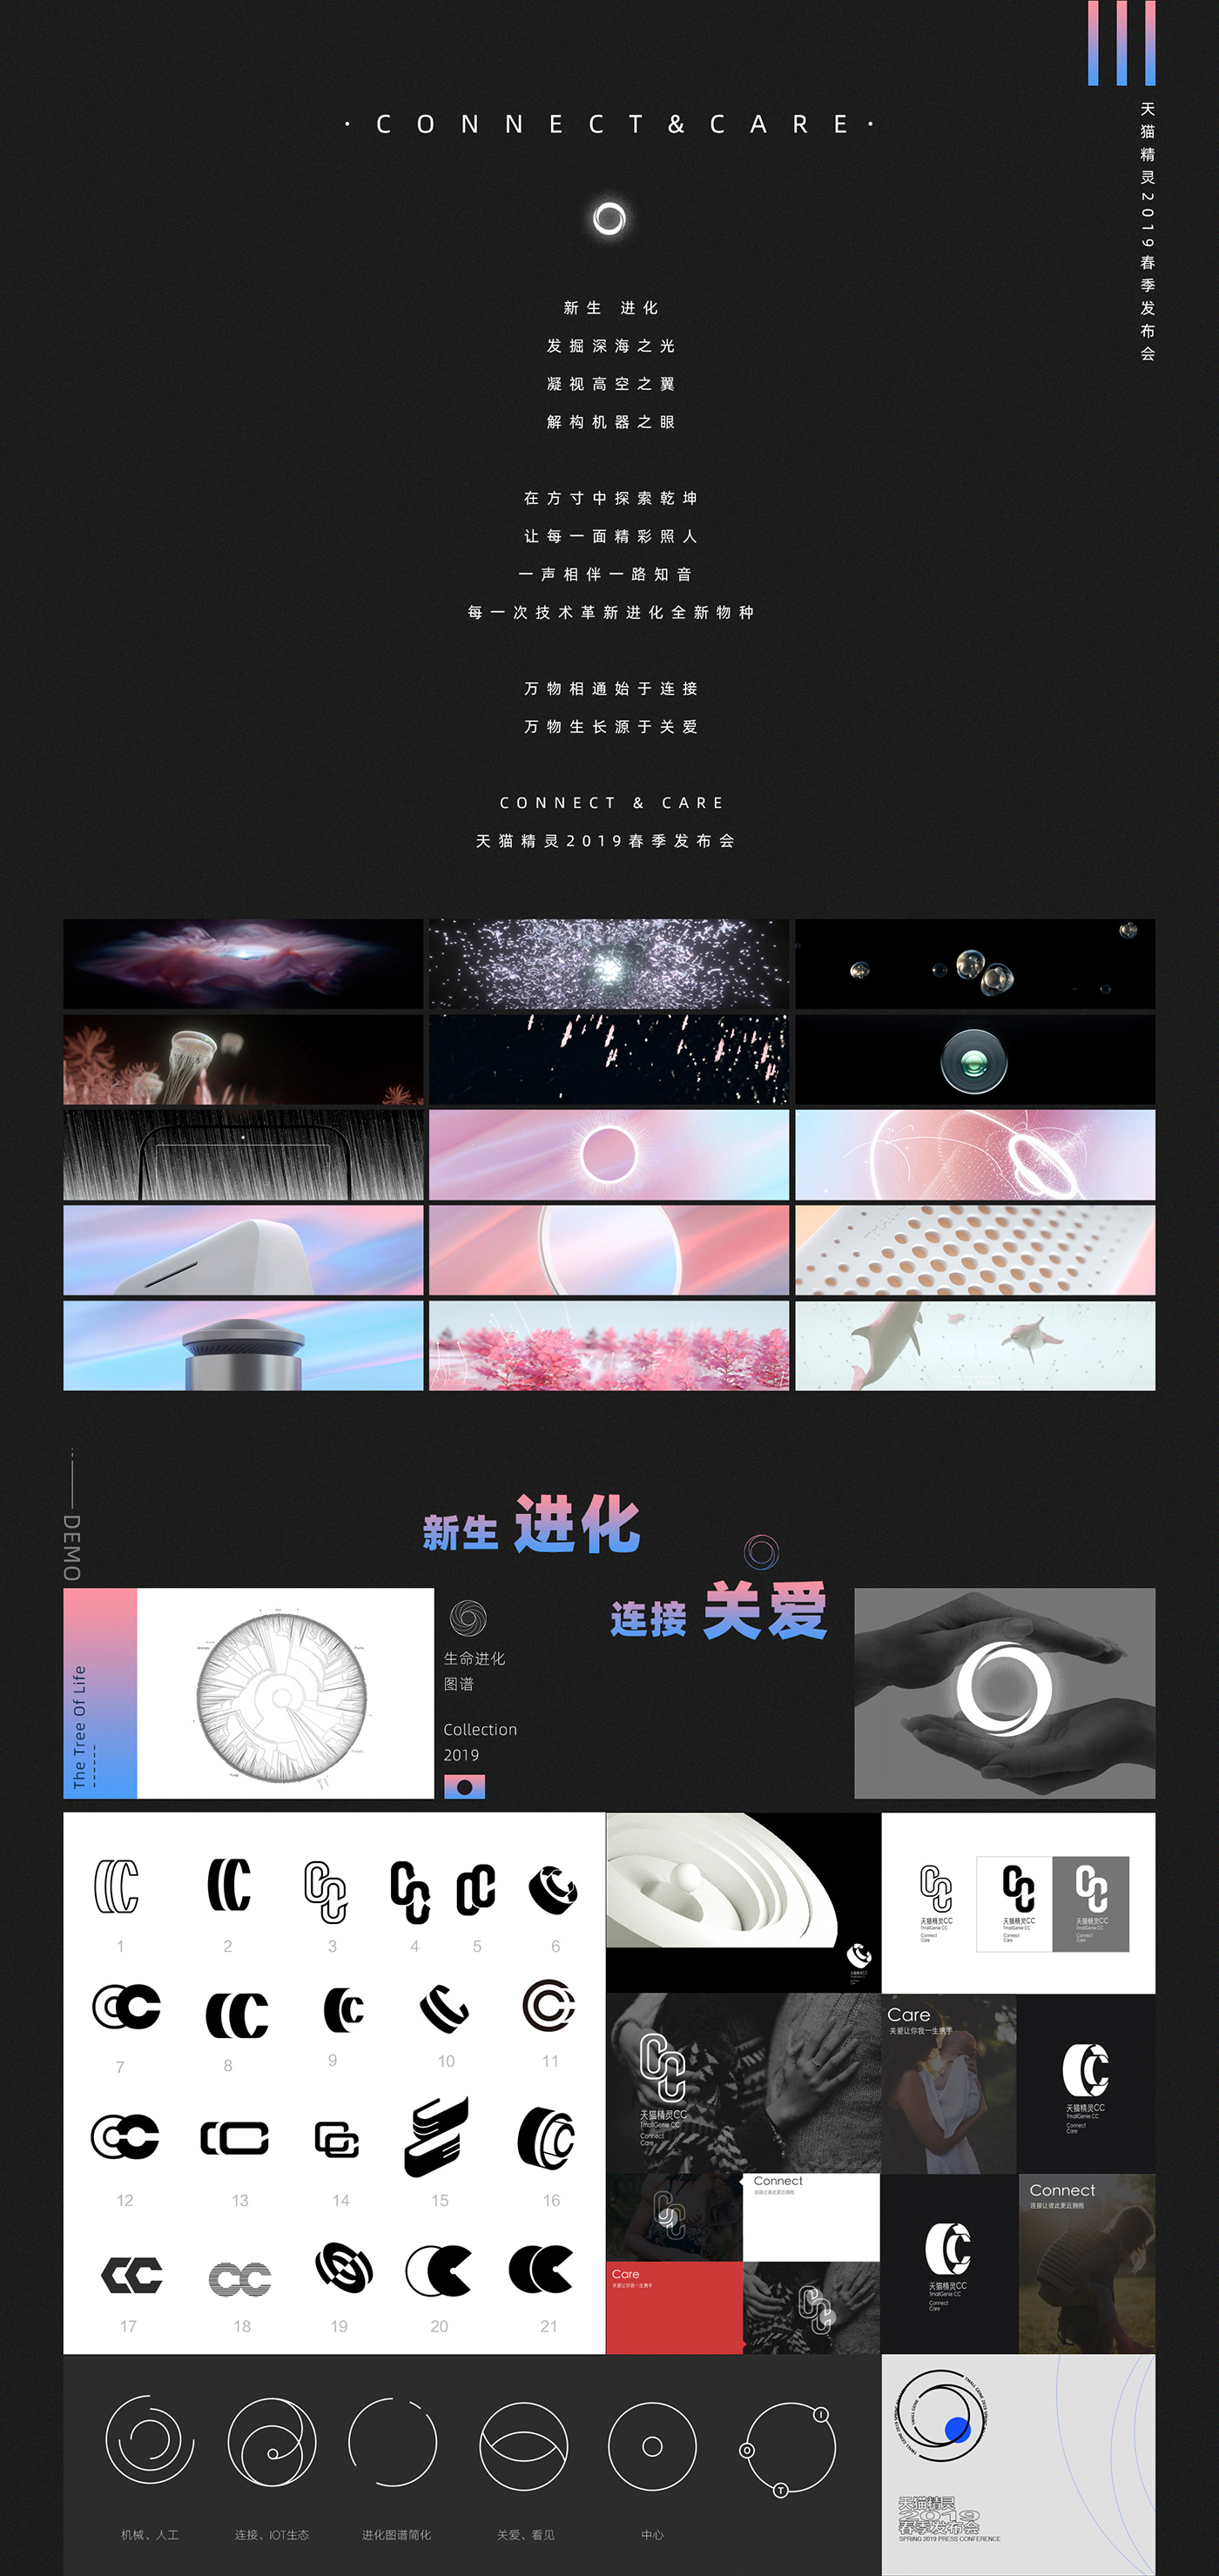 Tmall Genie 2019 New Product Launch Part 1 on Behance